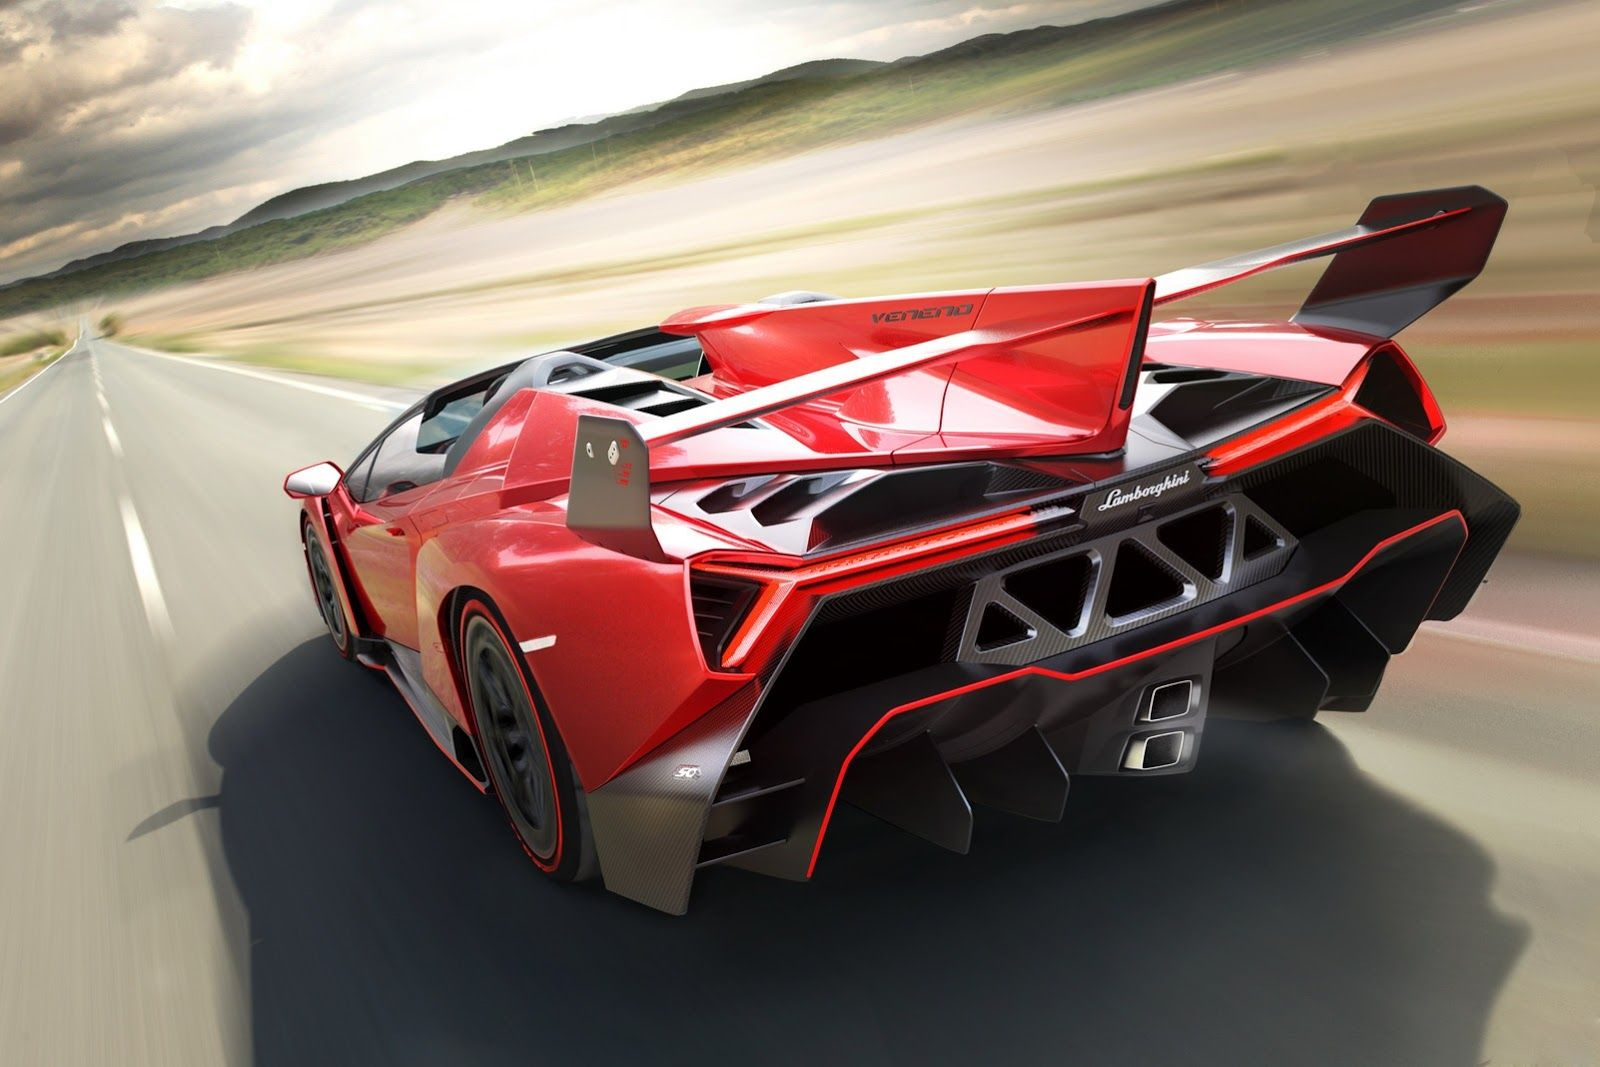 Lamborghini s exotic veneno roadster will take you to 355km h or 221mph without a top